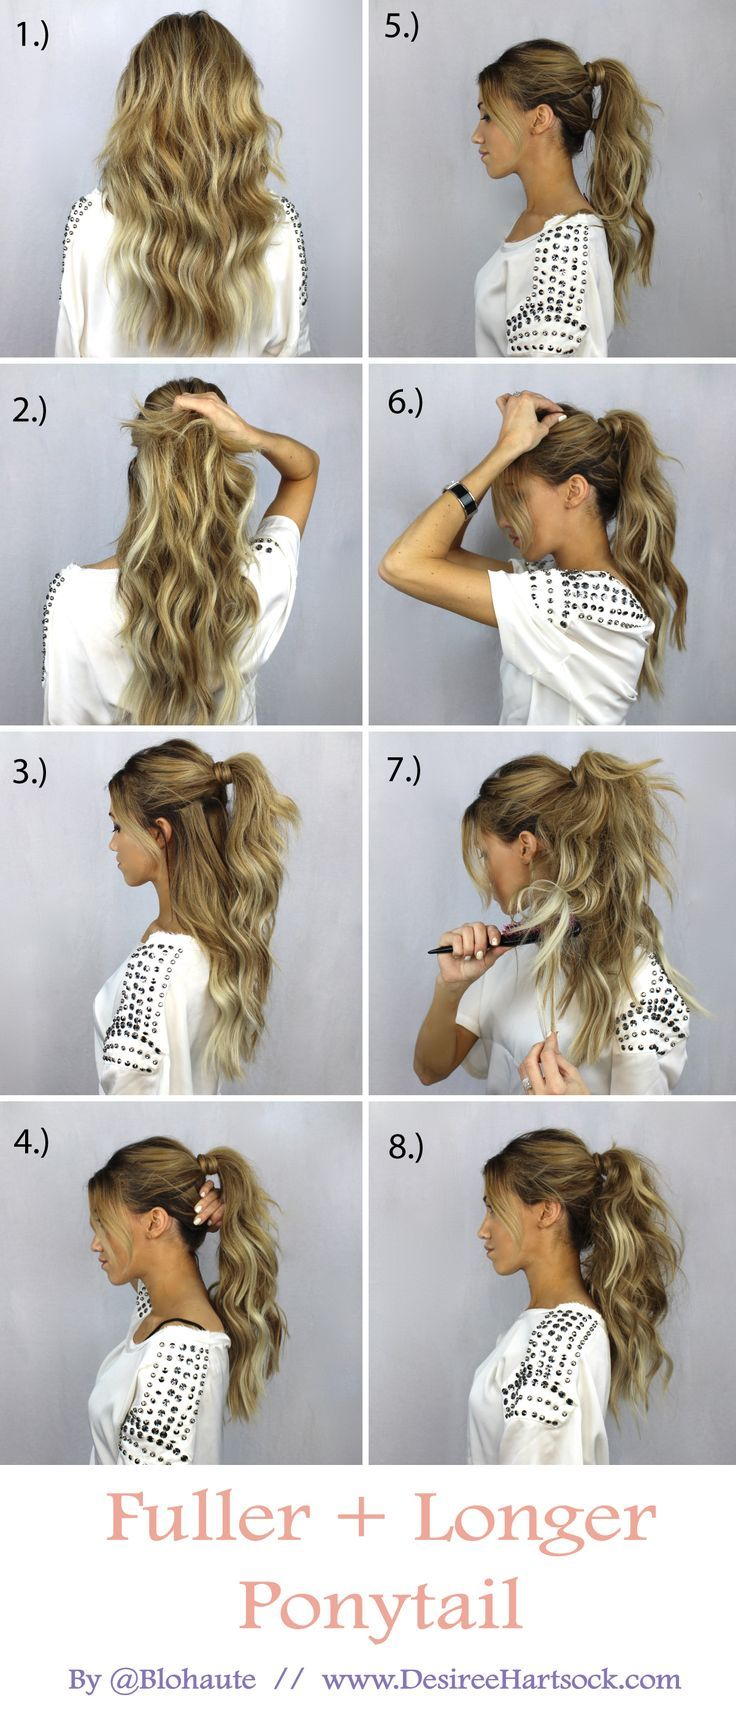 awesome How to Create a Fuller + Longer Ponytail